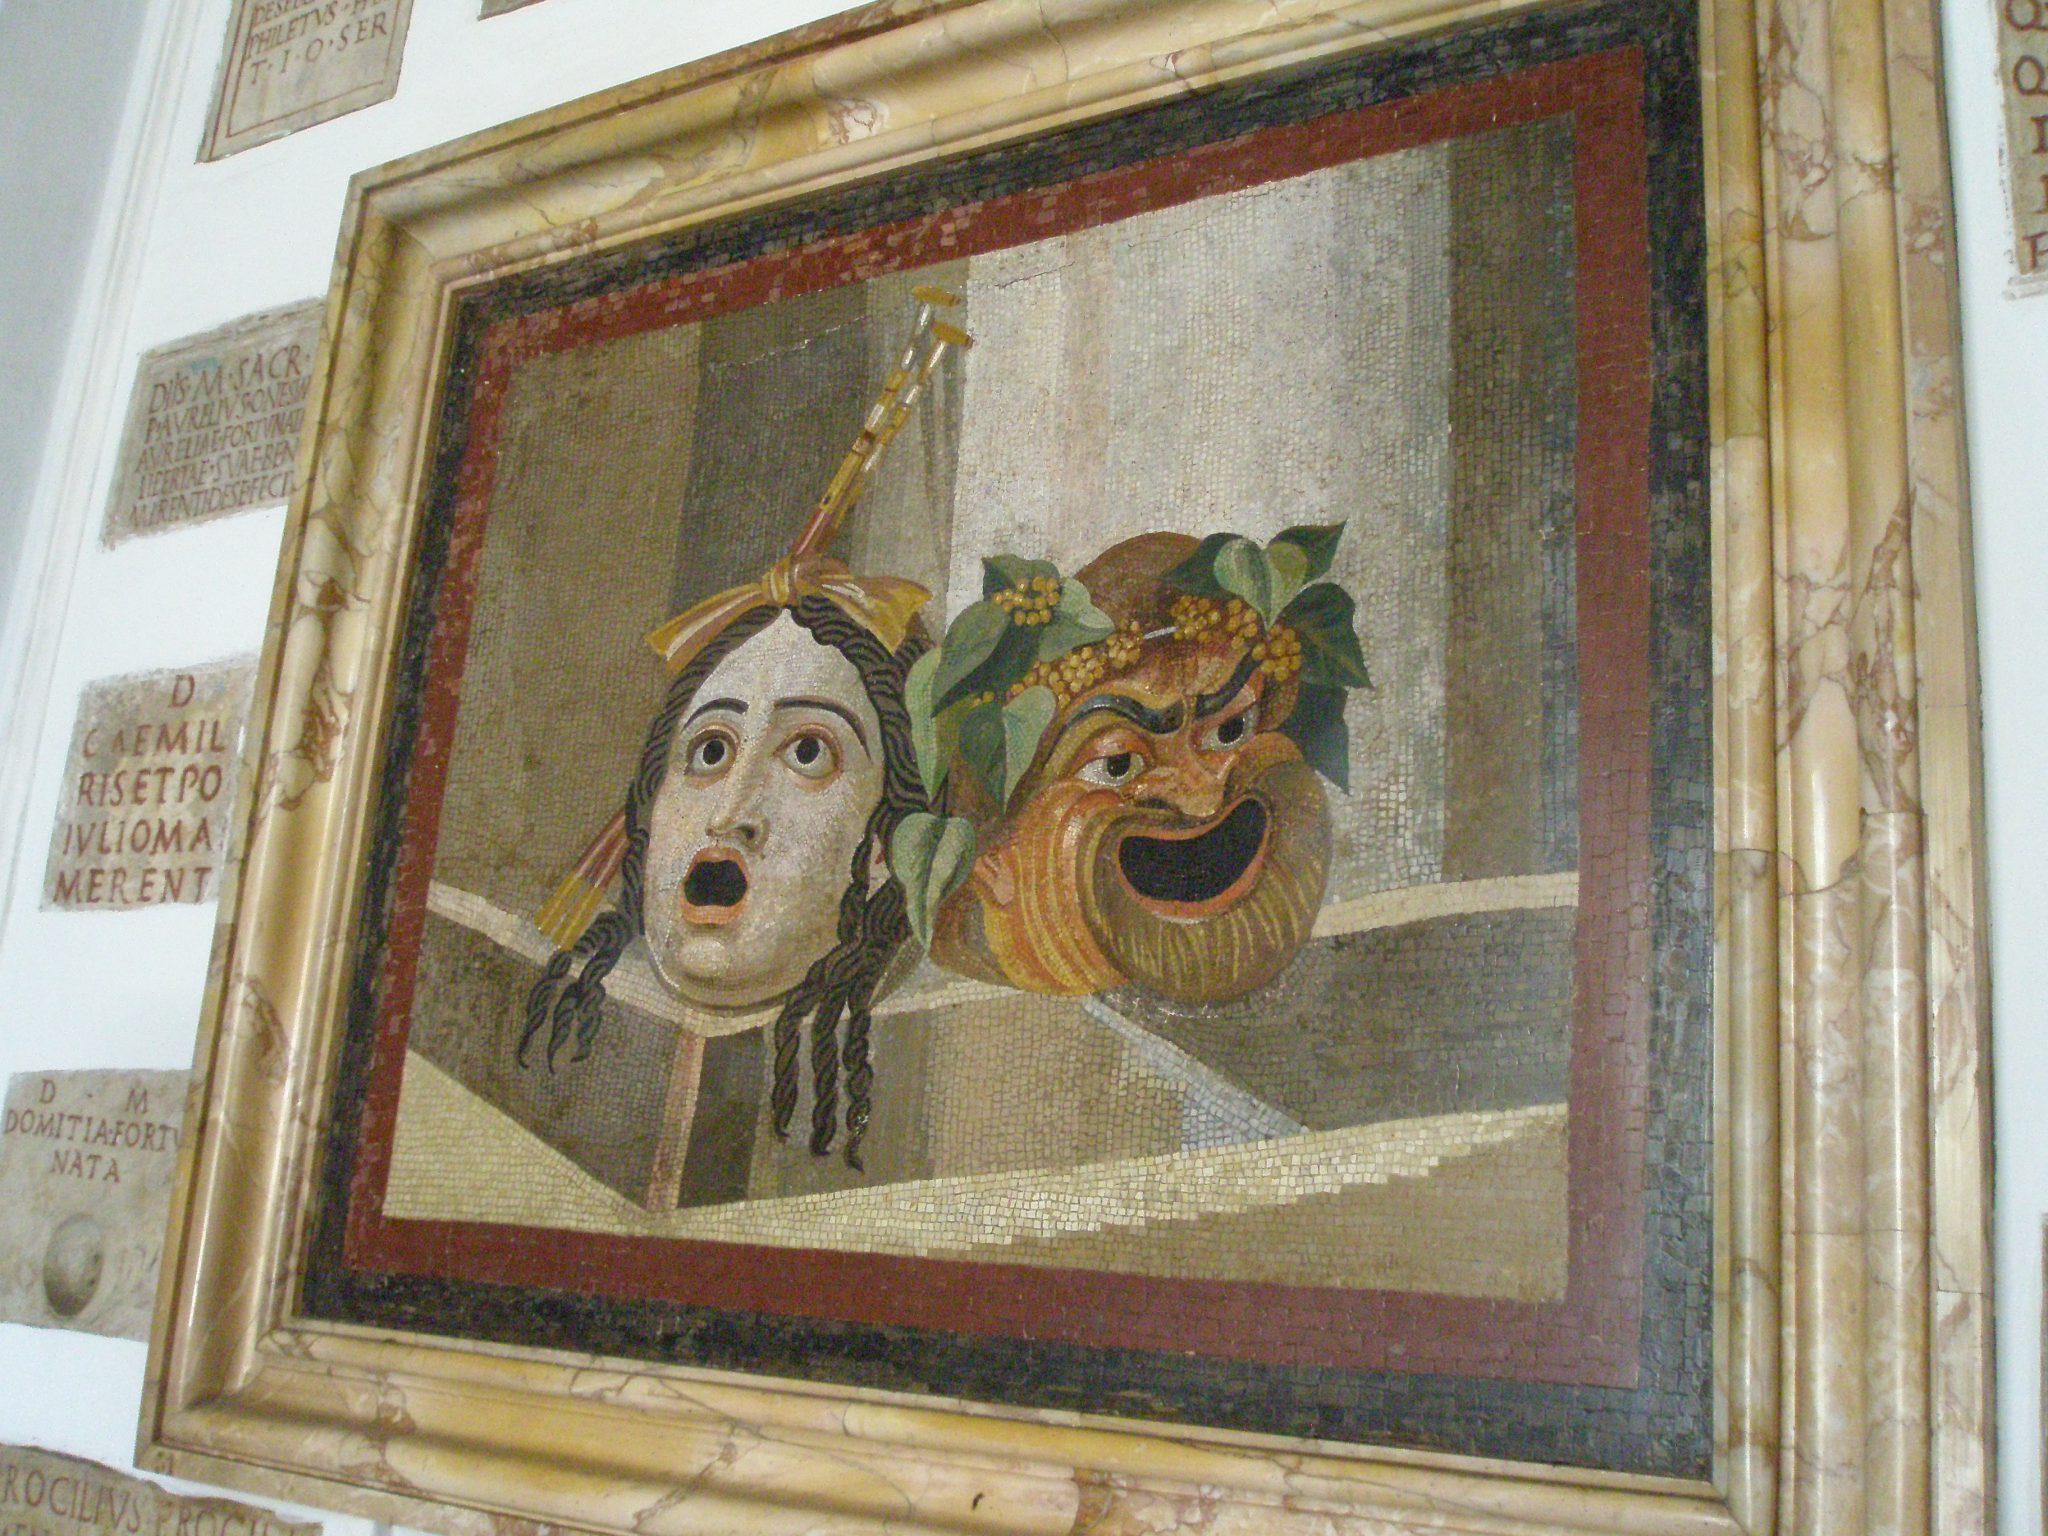 Mosaic of theatrical masks, displayed in the Palazzo Nuovo. This mosaic was recovered from the site of the Trajan Baths, which were constructed from 249--251AD.